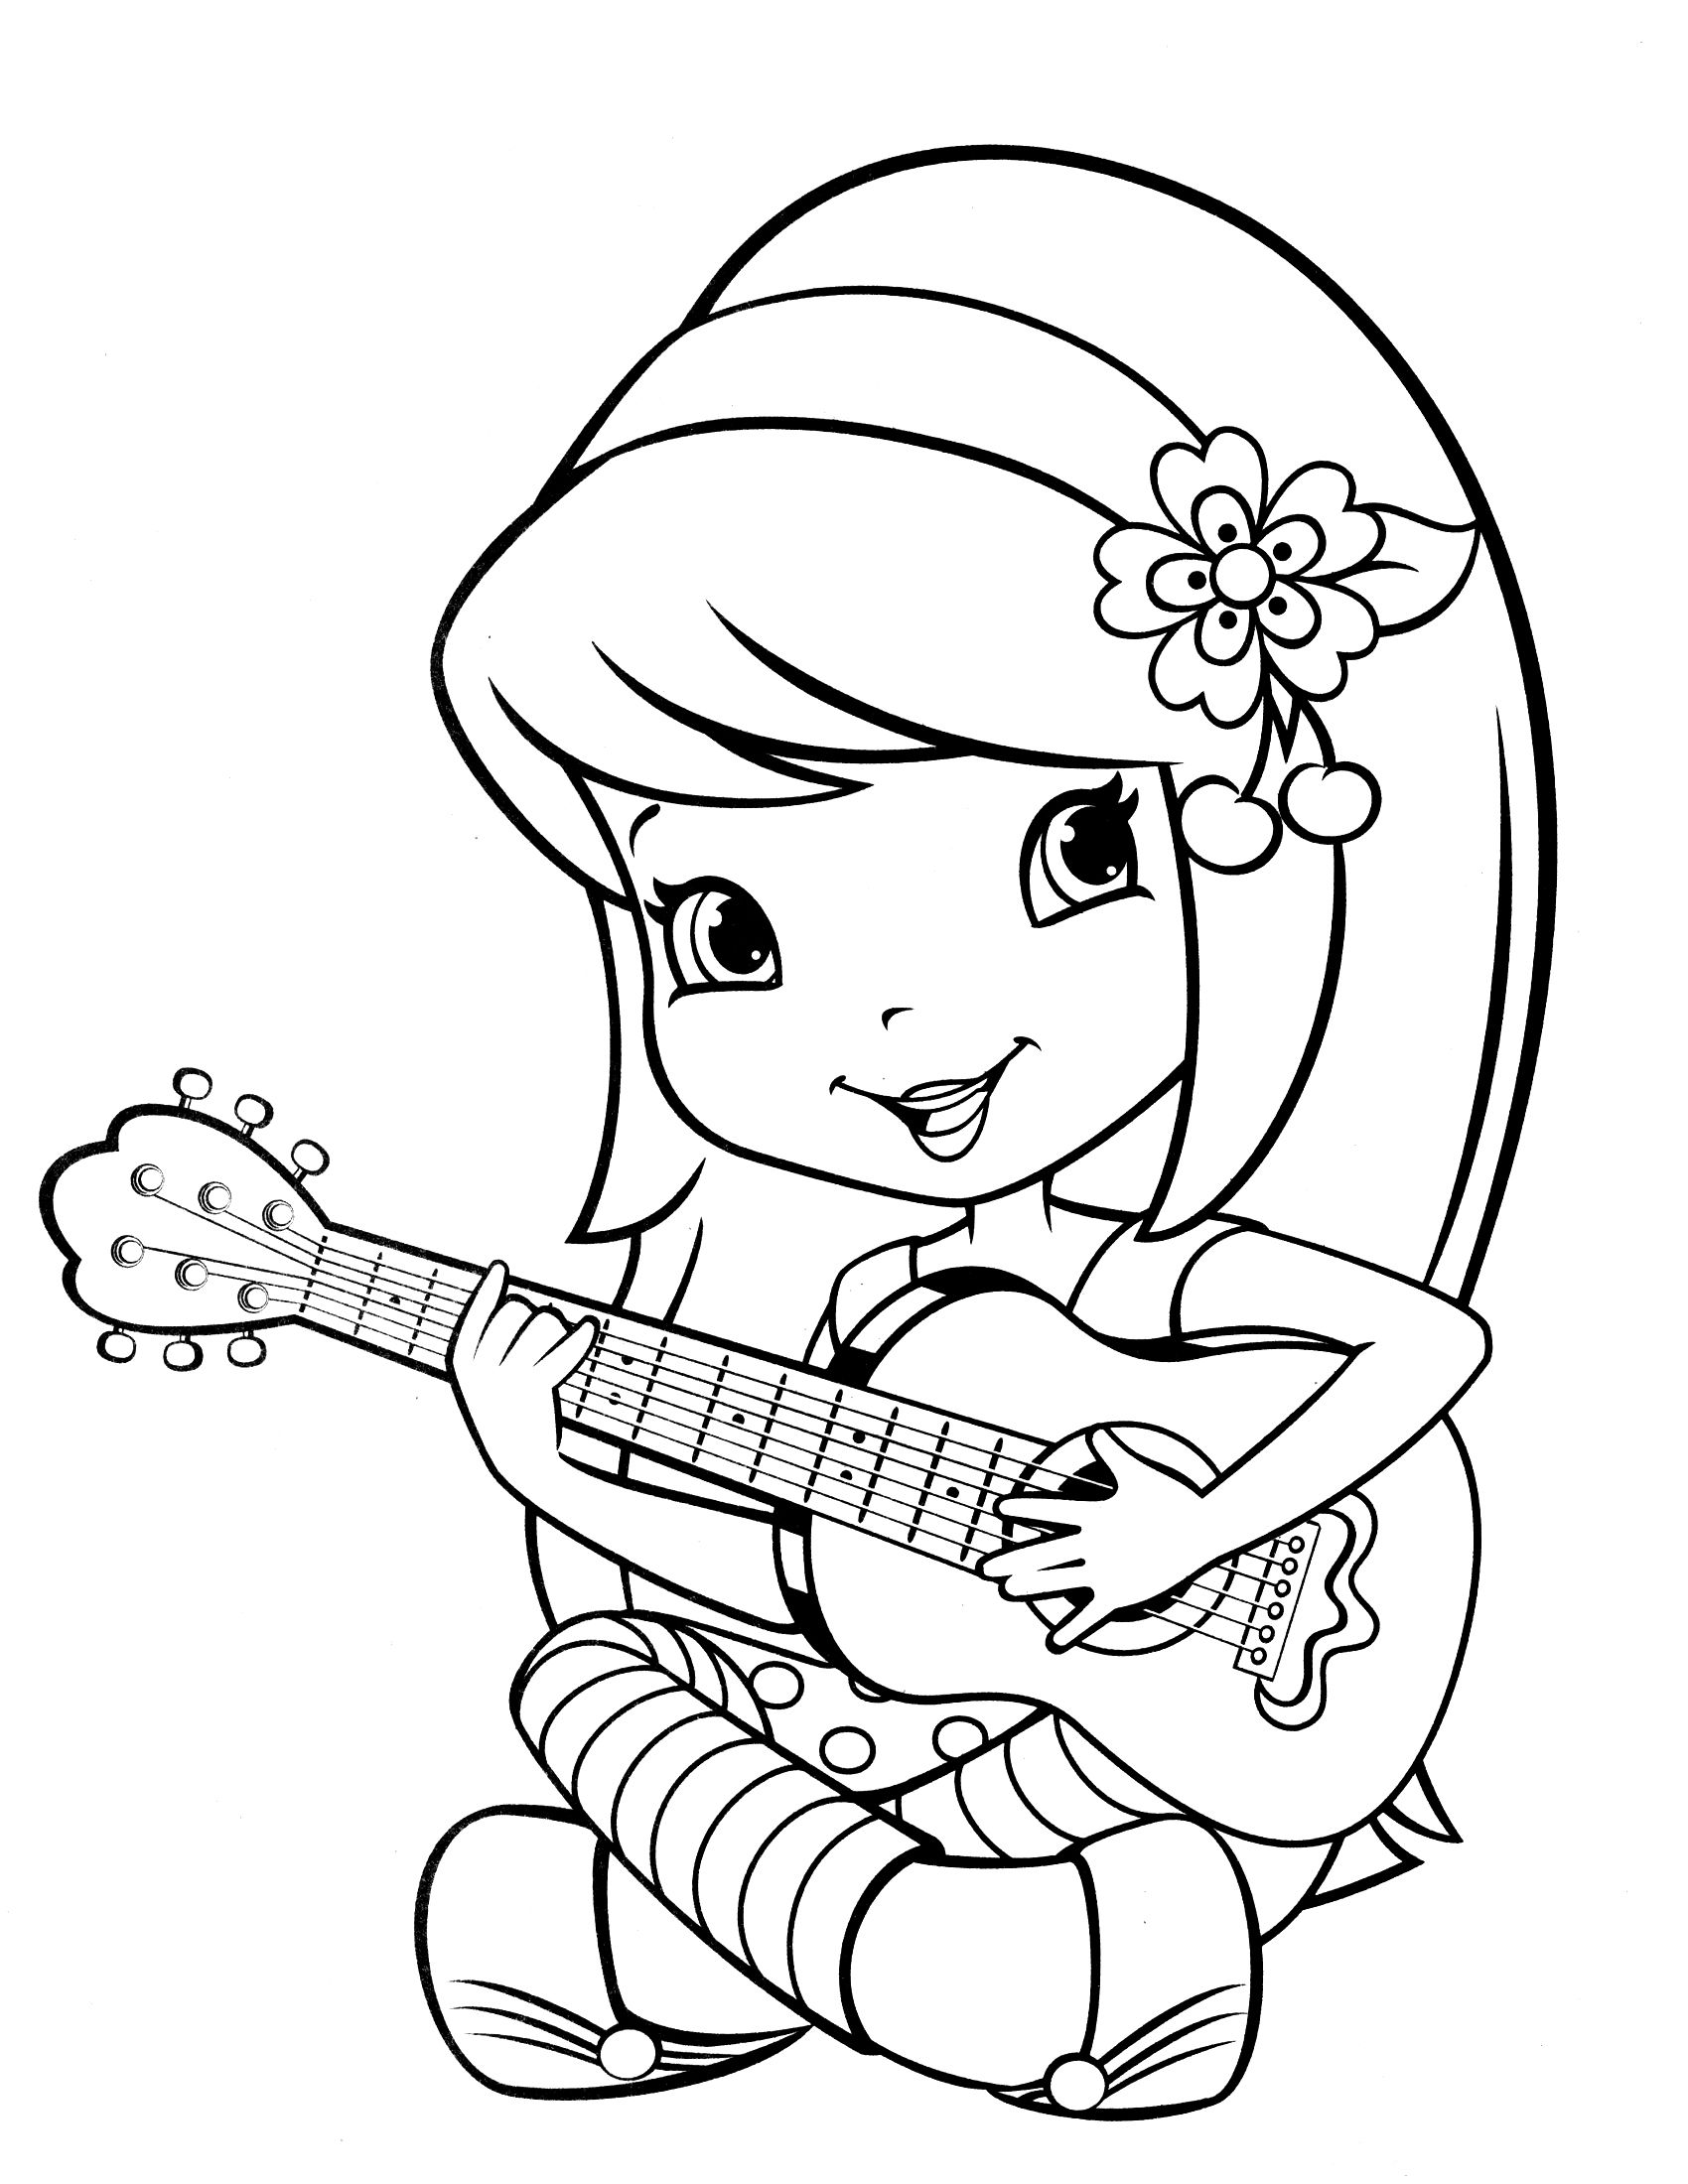 Adult Cute Printable Strawberry Shortcake Coloring Pages Gallery Images best 1000 images about strawberry shortcake on pinterest pictures and coloring pages